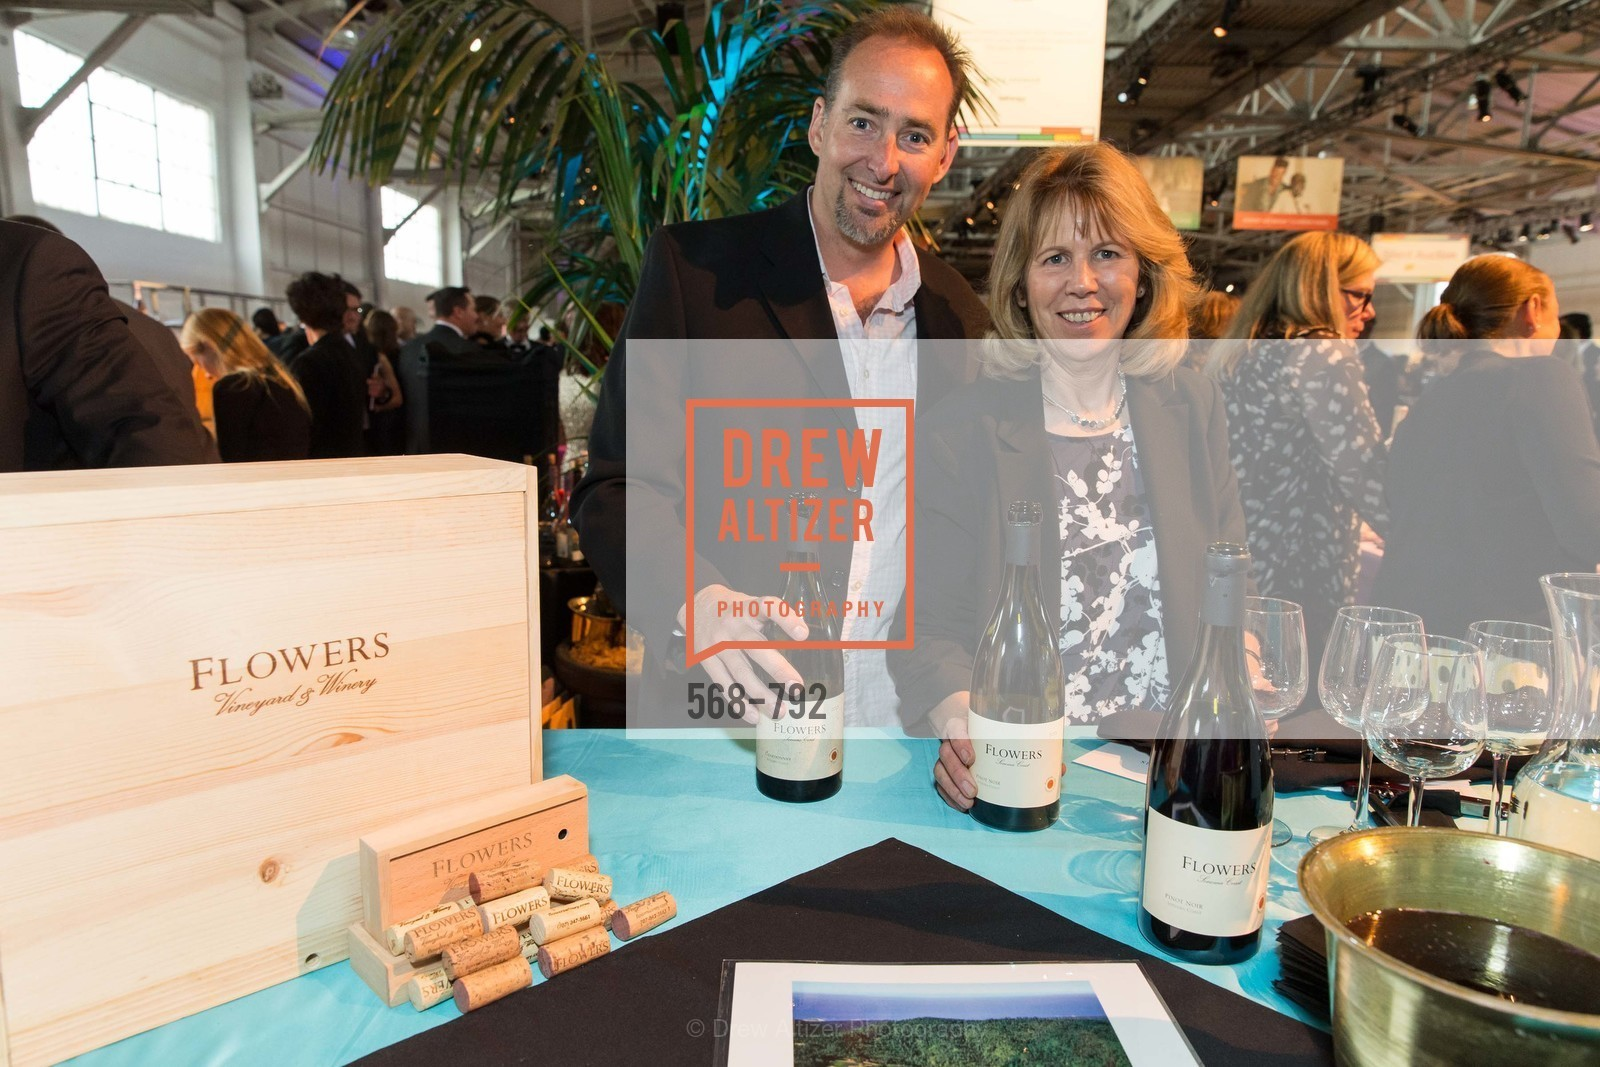 Flowers Vineyard And Winery, MEALS ON WHEELS OF SAN FRANCISCO'S 28th Annual Star Chefs and Vintners Gala, US, April 19th, 2015,Drew Altizer, Drew Altizer Photography, full-service agency, private events, San Francisco photographer, photographer california